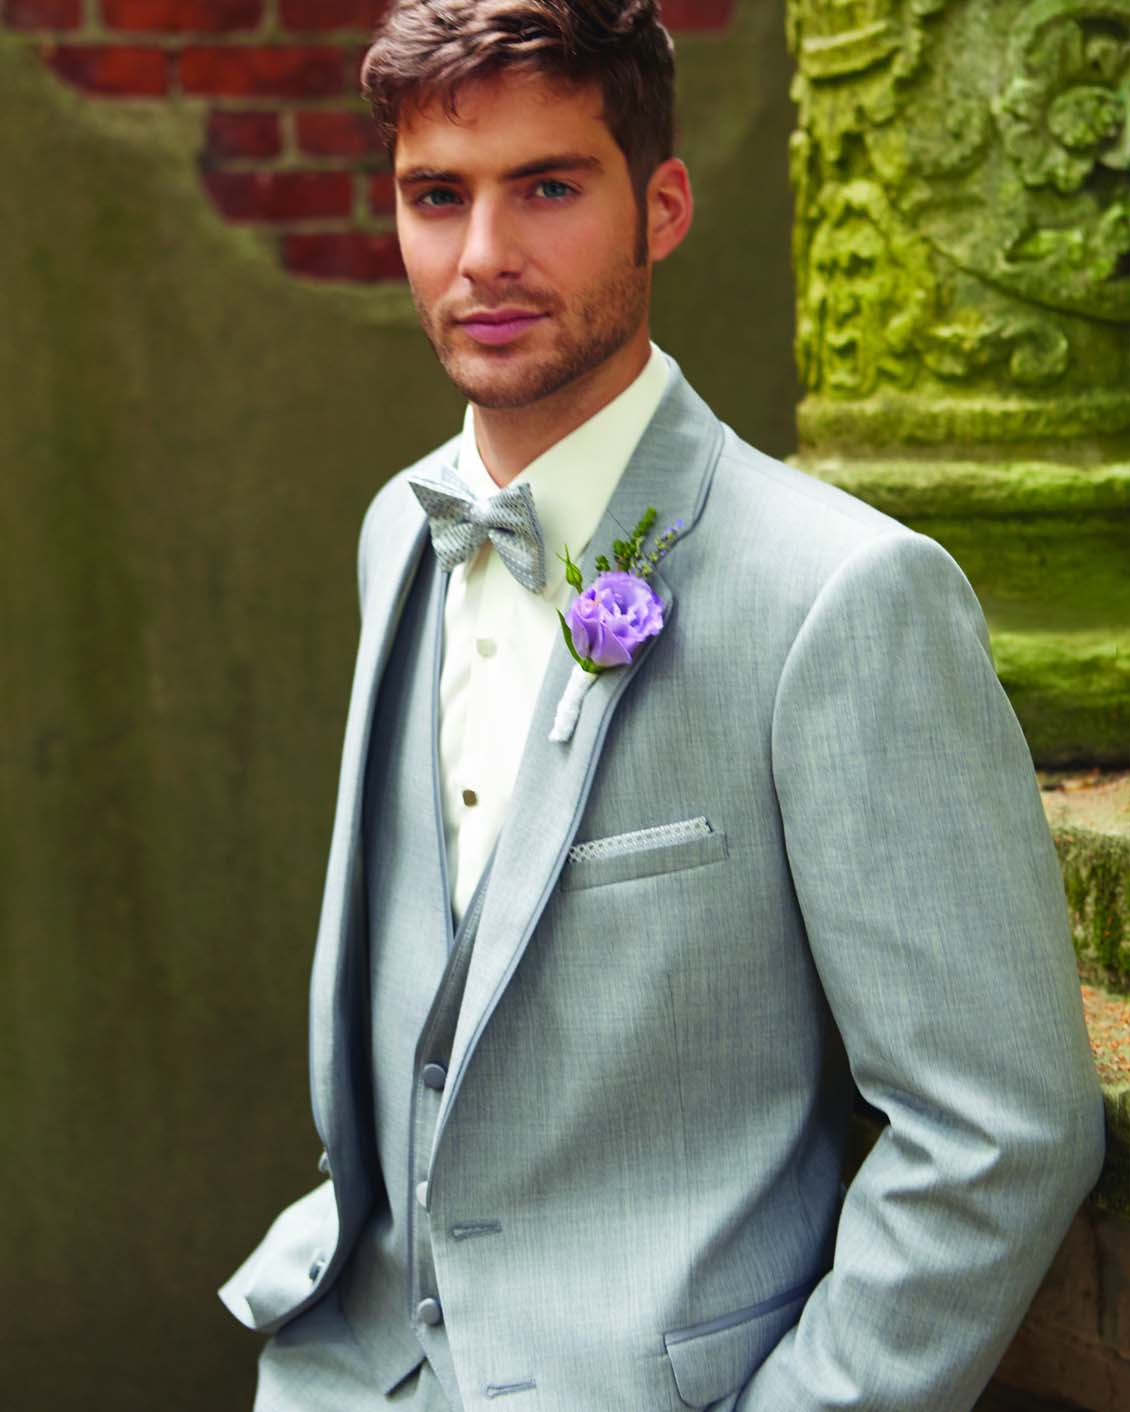 Contemporary Crazy Prom Tuxedos Ideas - Wedding Dress Ideas ...